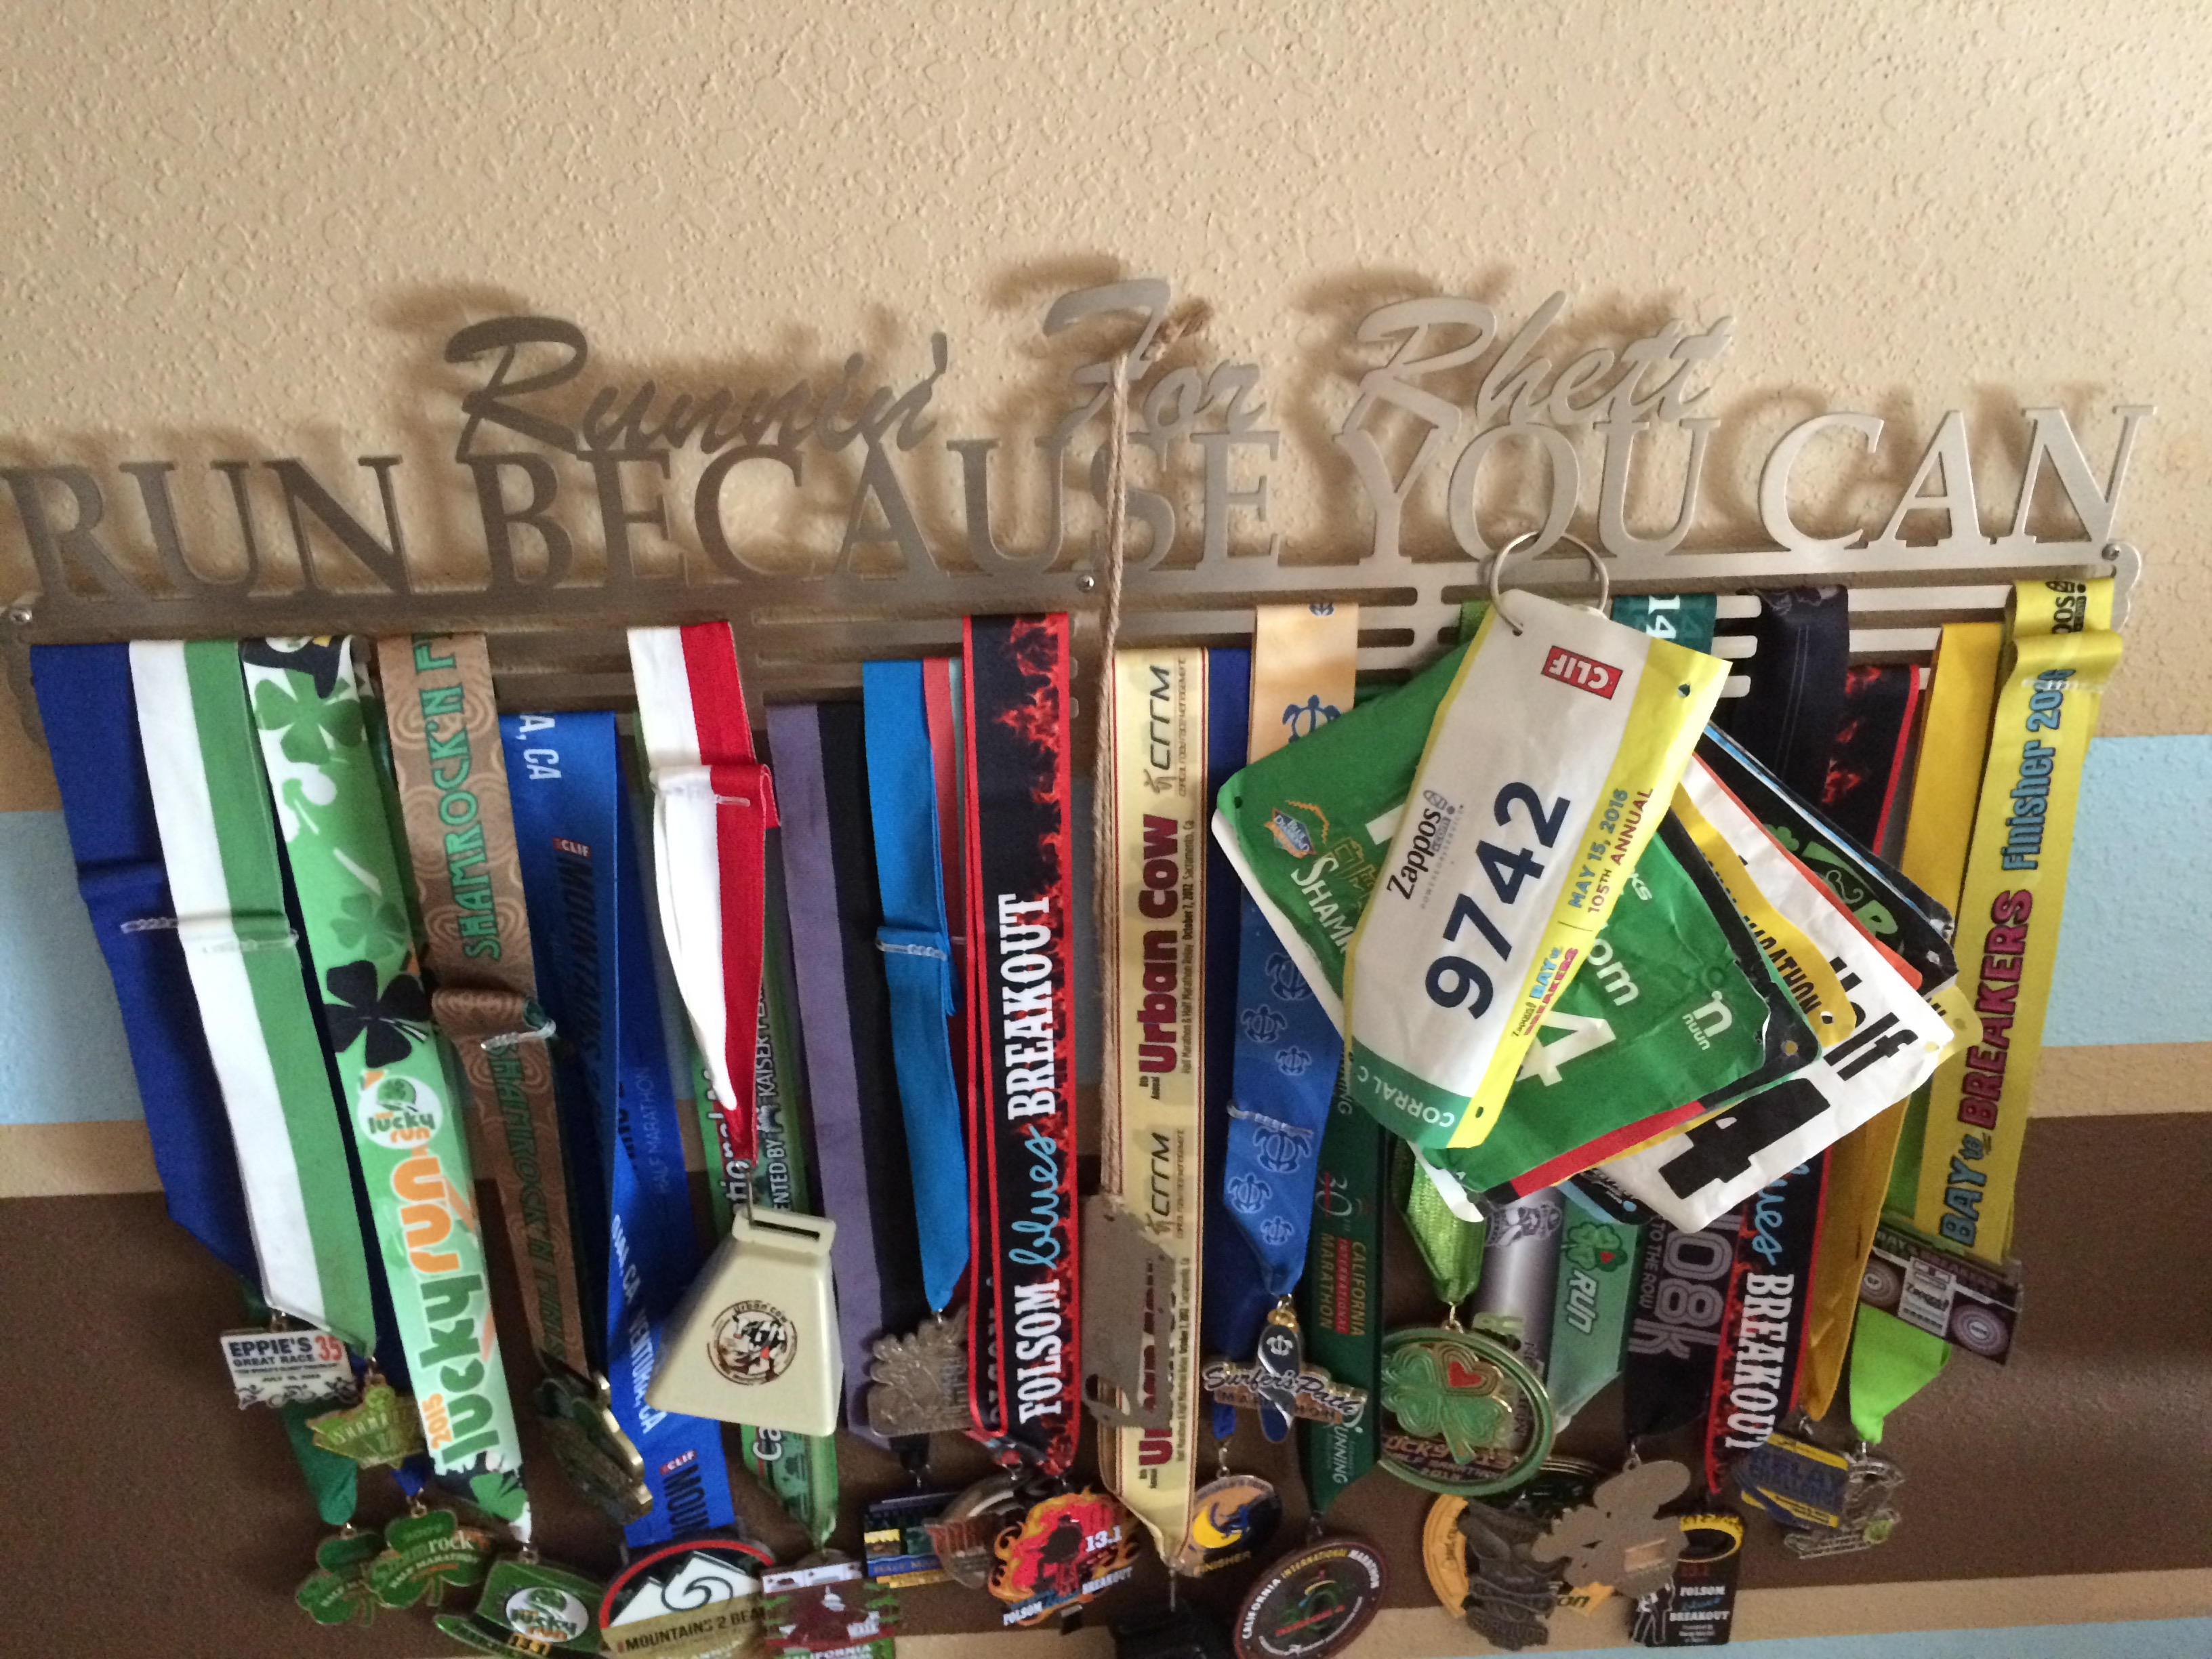 the shelf outrunning race rain about and display diy bib medal cost